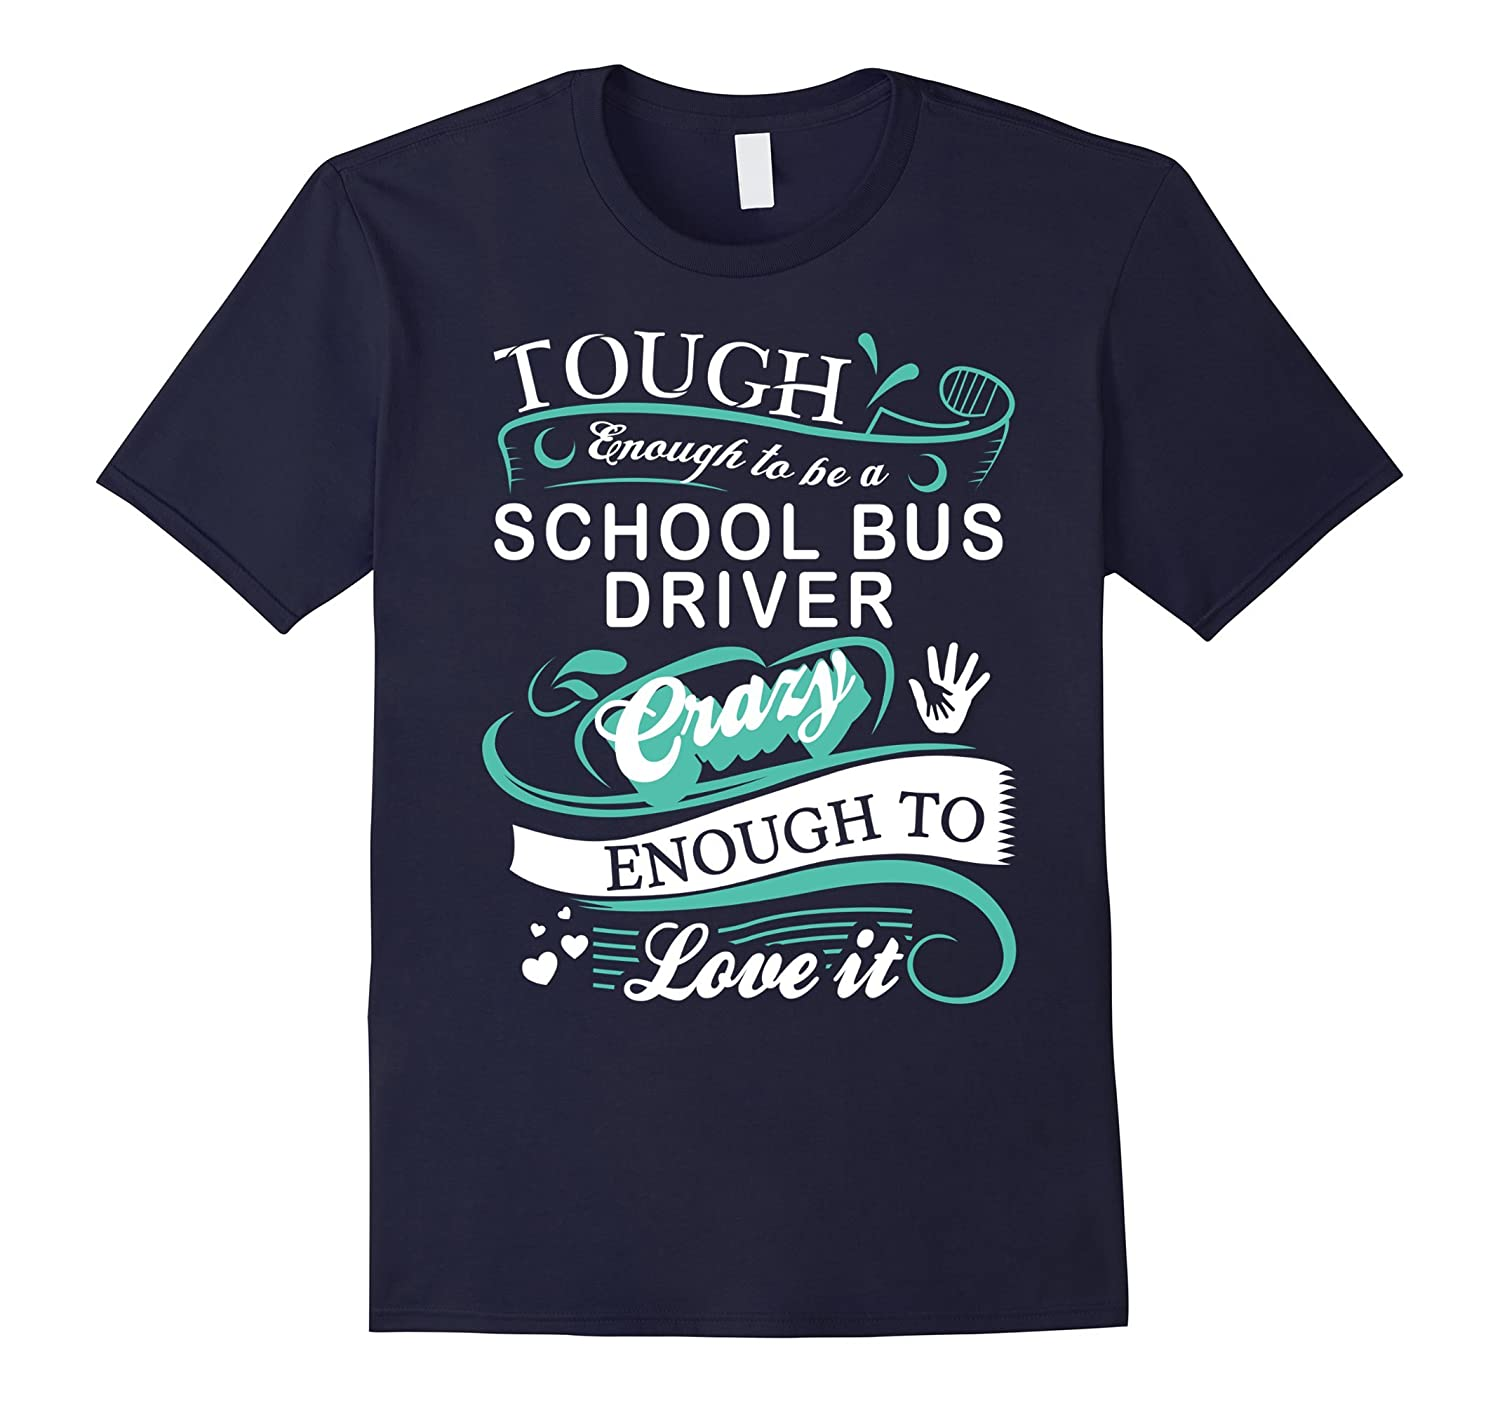 Great Gift T Shirt For School Bus Driver Funny Quotes Goatstee